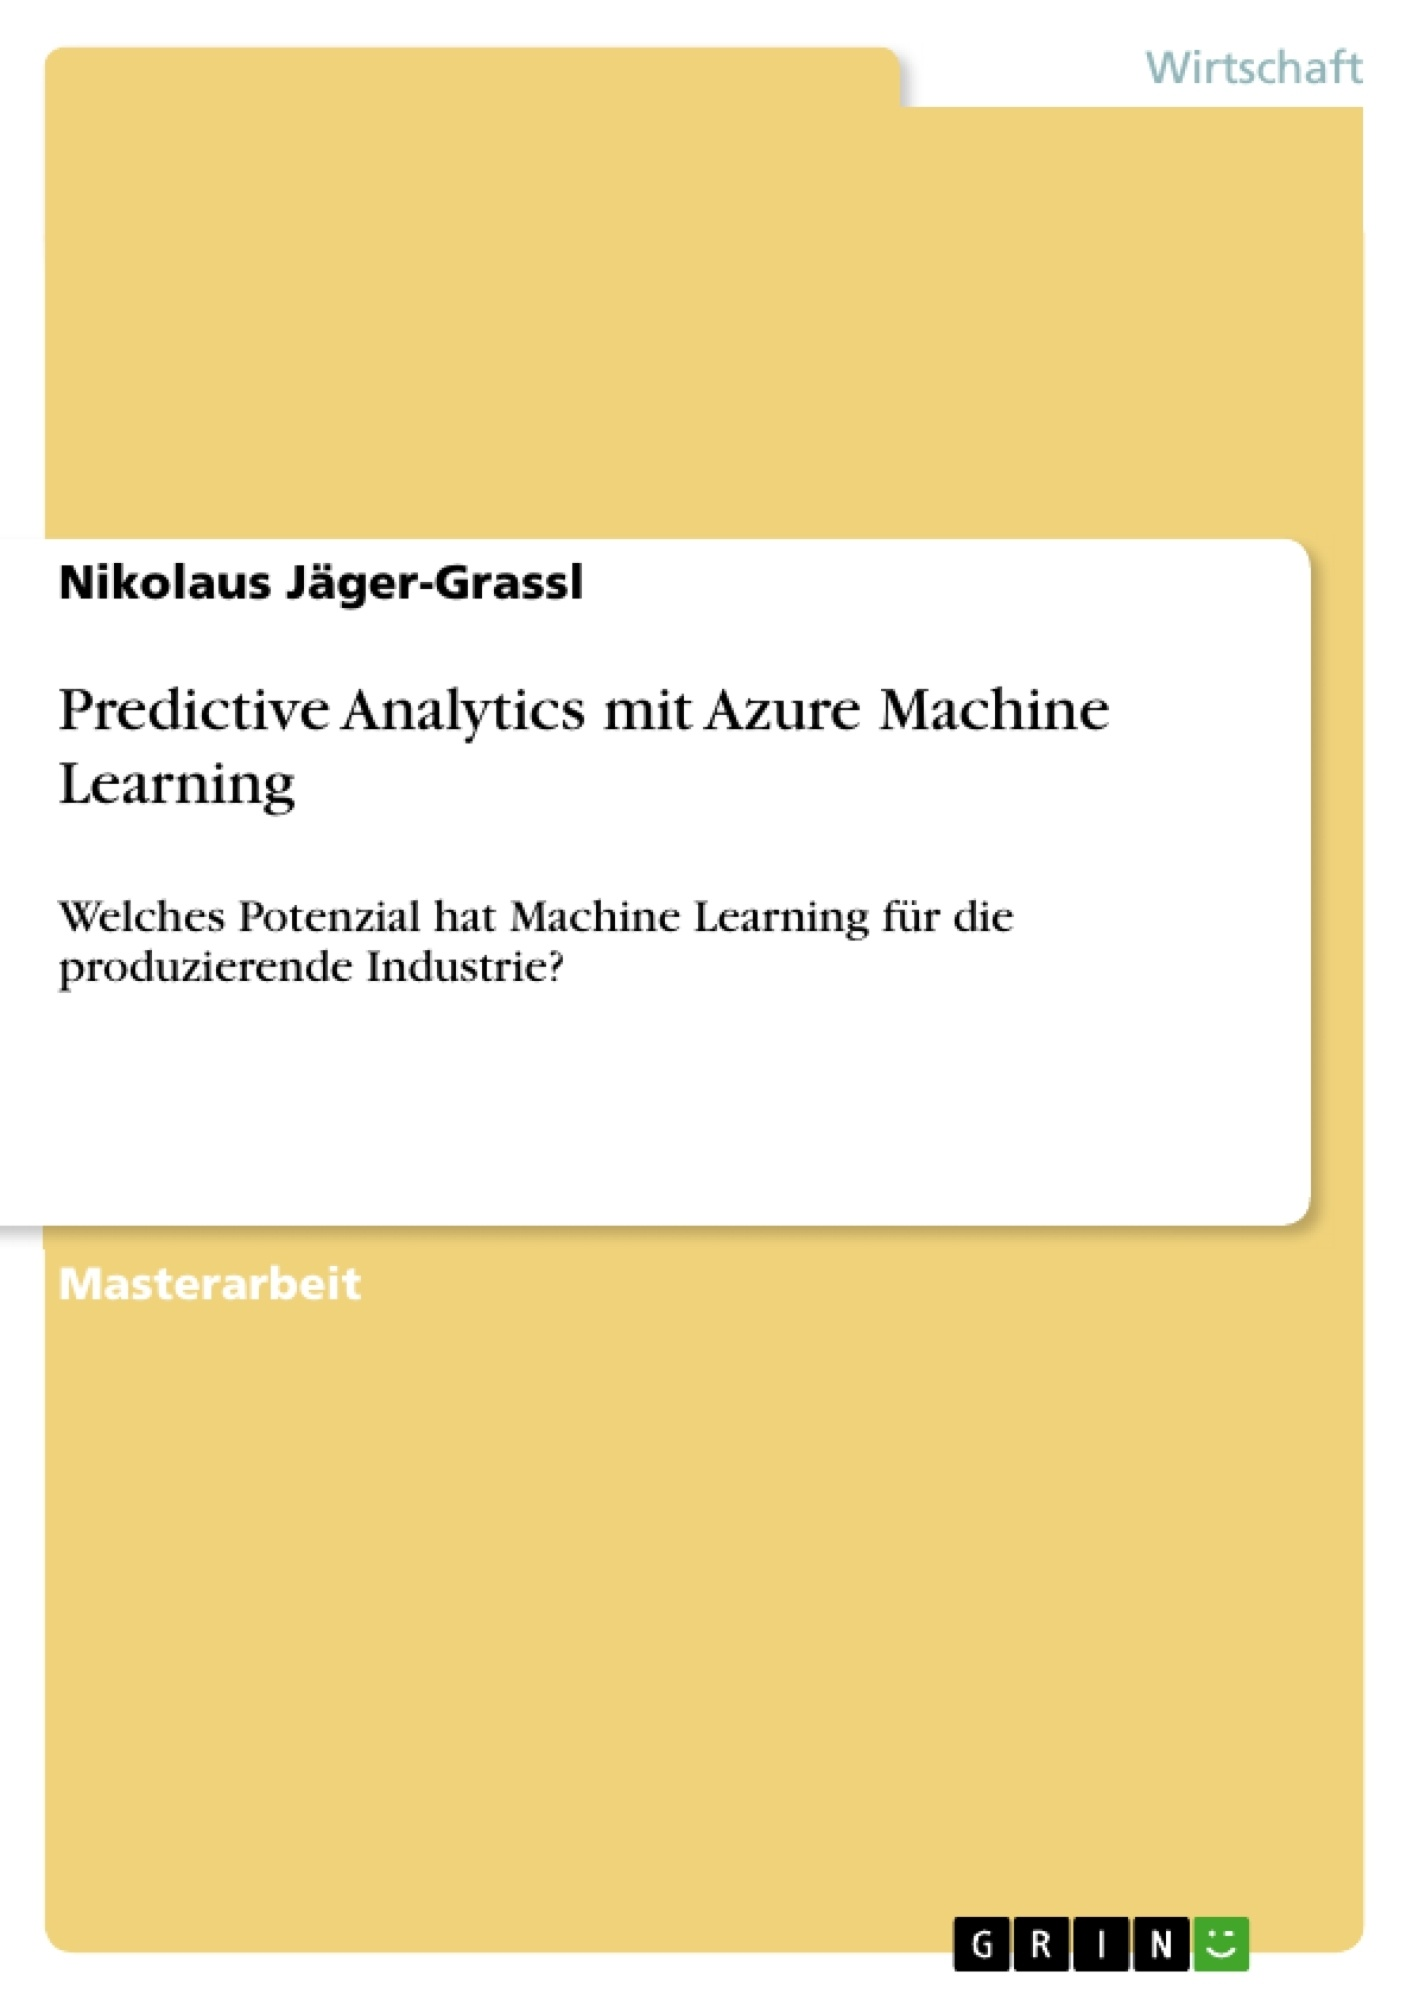 Titel: Predictive Analytics mit Azure Machine Learning